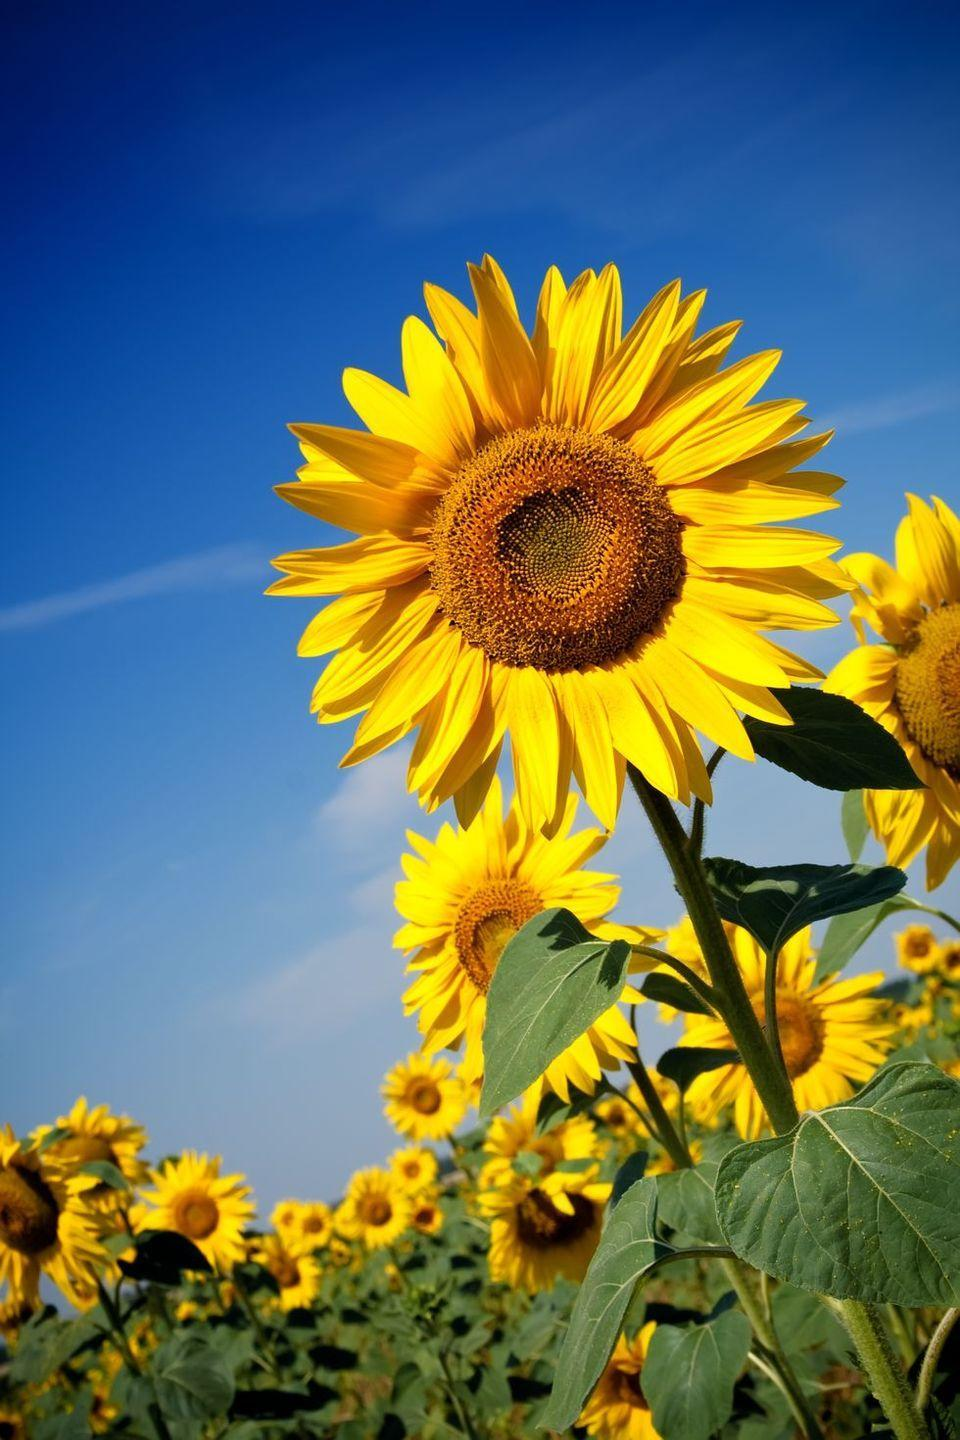 "<p>Legend has it that when Spanish explorers reached the Americas, they thought <a href=""https://www.goodhousekeeping.com/home/gardening/a32638/sunflower-fun-facts/"" rel=""nofollow noopener"" target=""_blank"" data-ylk=""slk:sunflowers"" class=""link rapid-noclick-resp"">sunflowers</a> were made of real gold. Can you blame them? Of course, they were wrong. That's where the sunflower got its symbolism of ""false riches."" </p>"